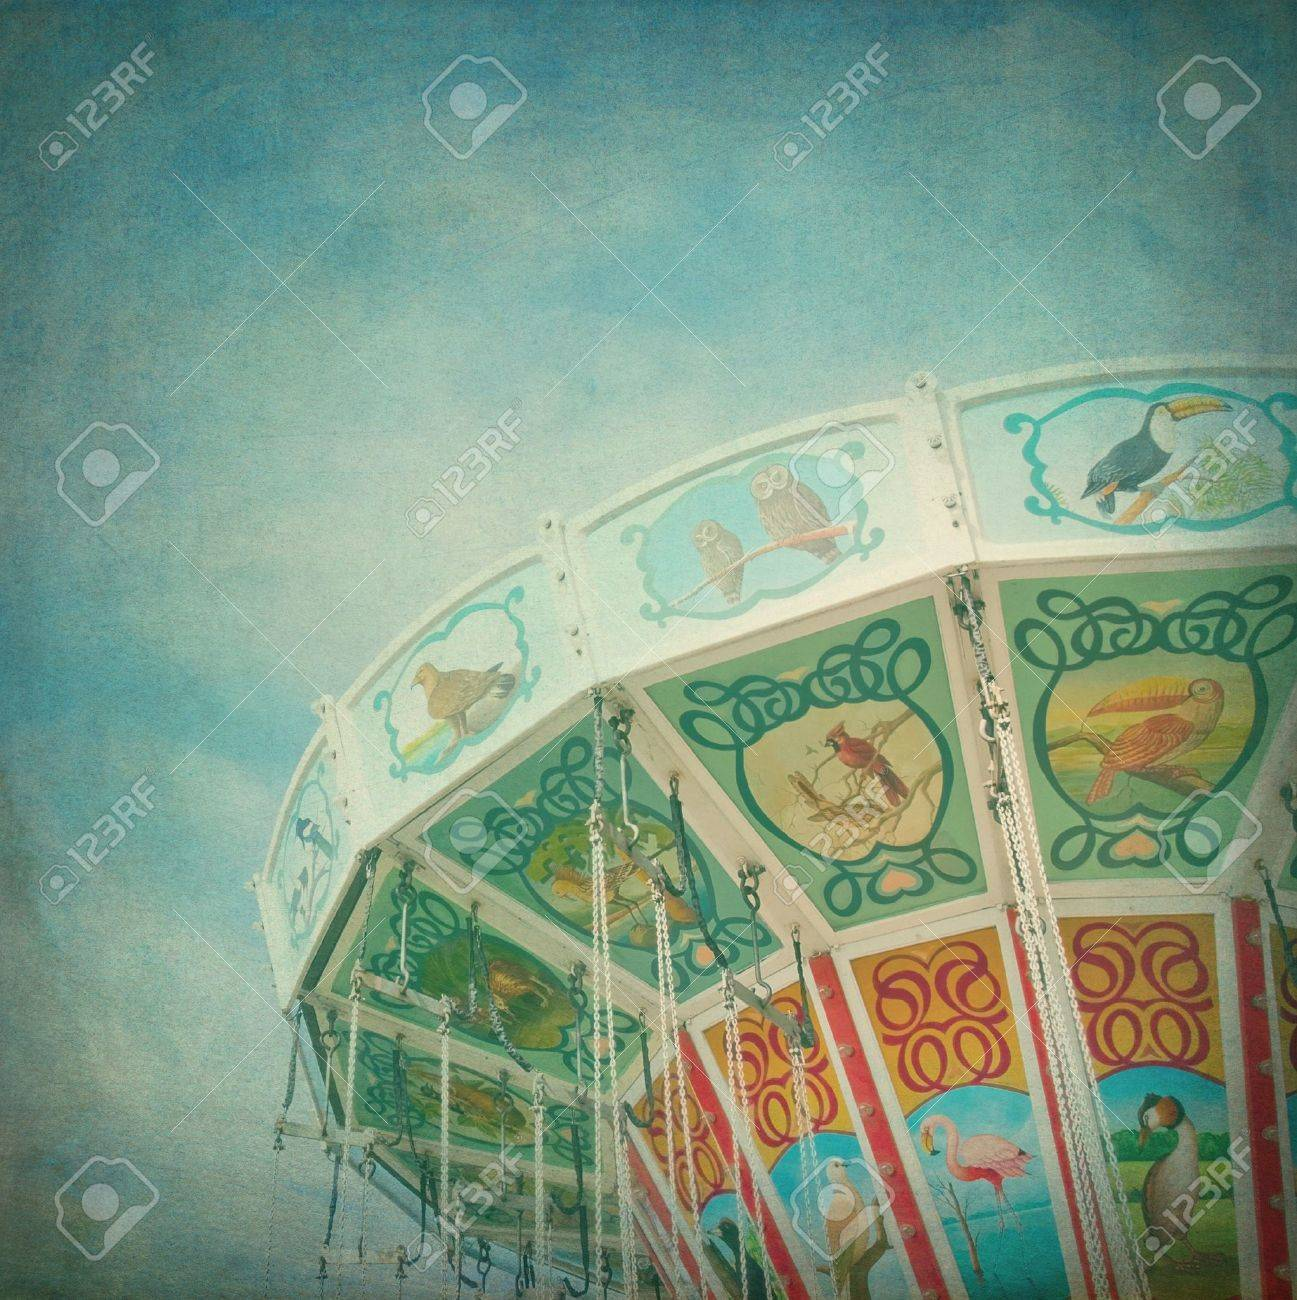 Closeup of a colorful carousel with blue sky background, with